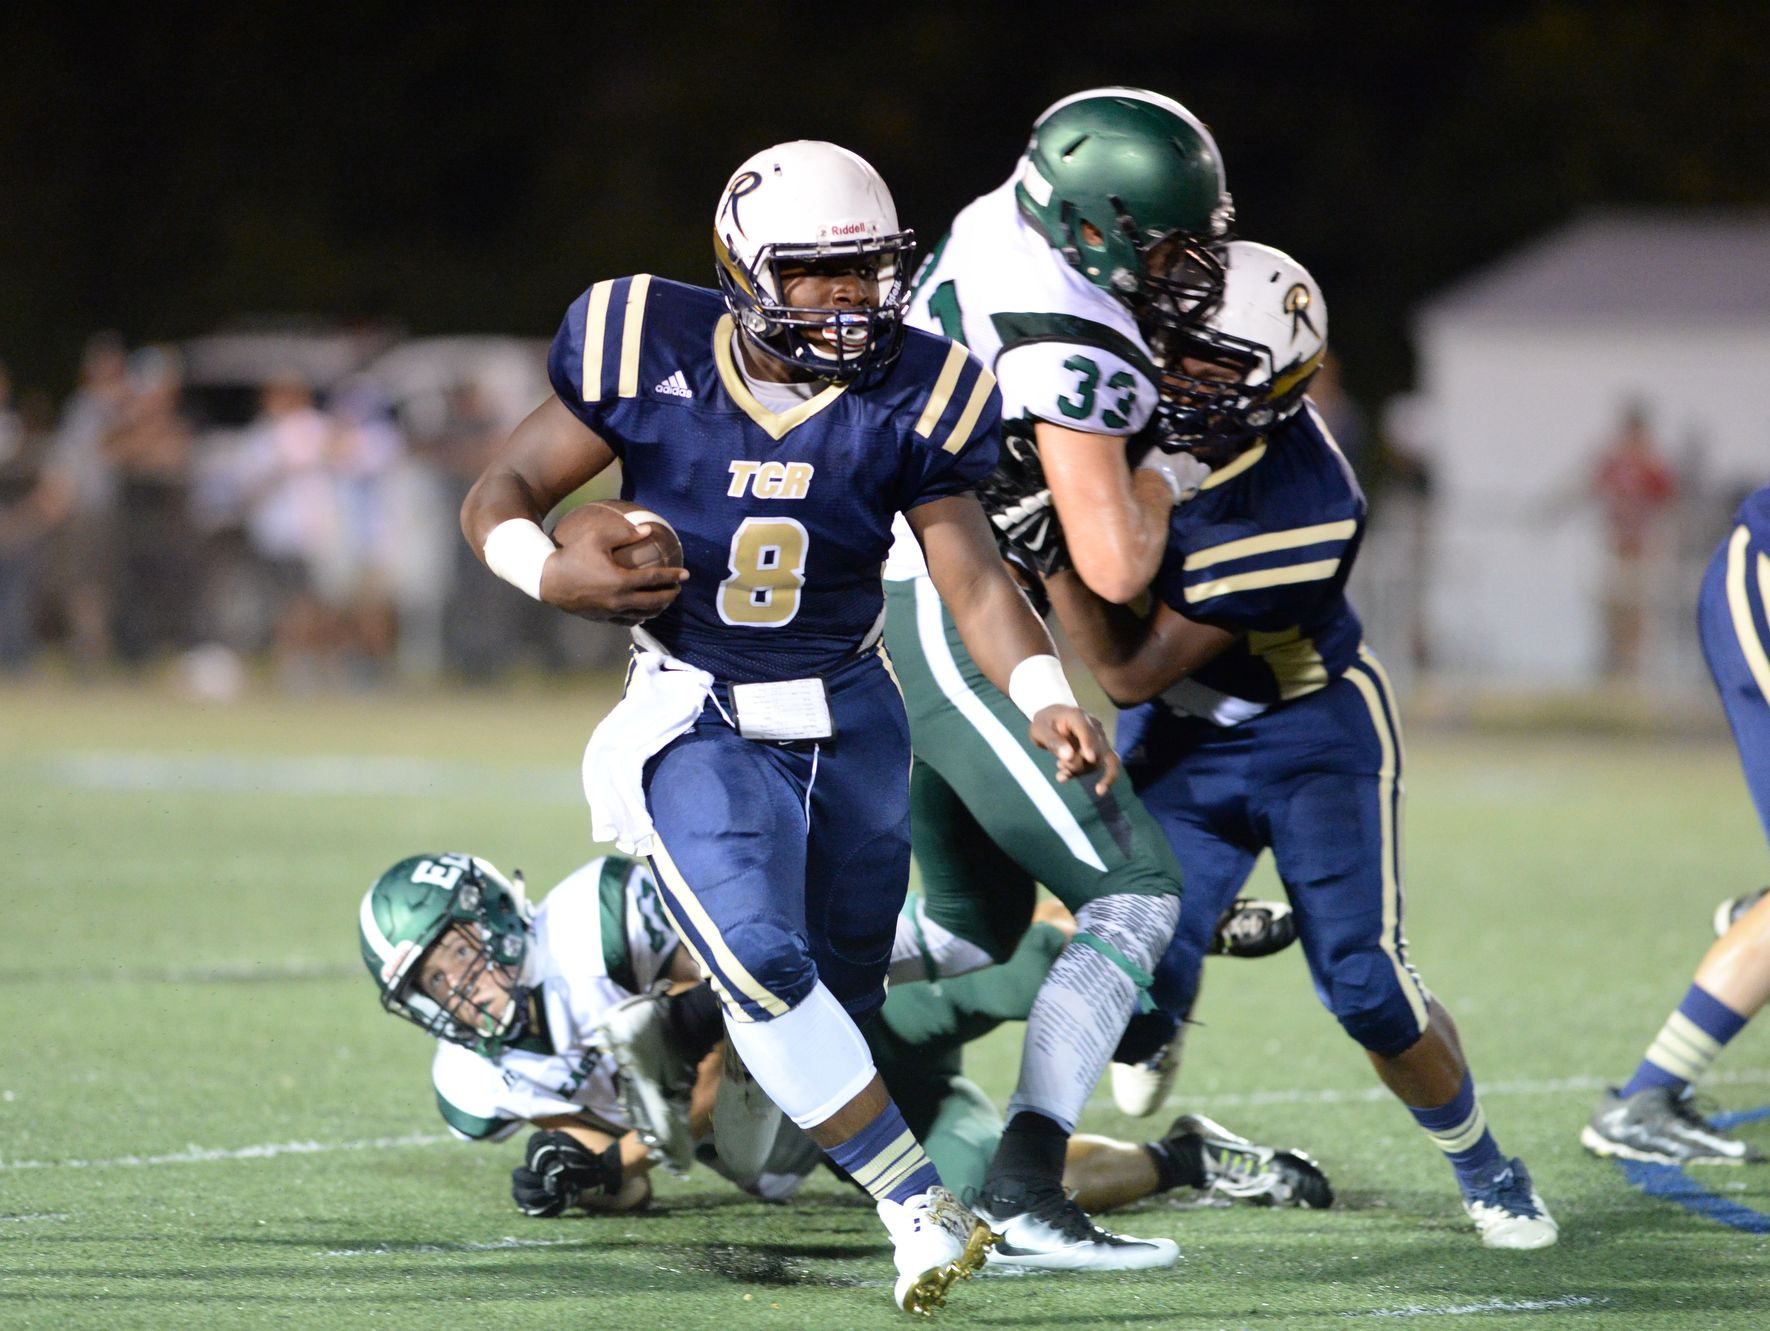 Lejuan Rush (8) is the top rusher for the Roberson football team.